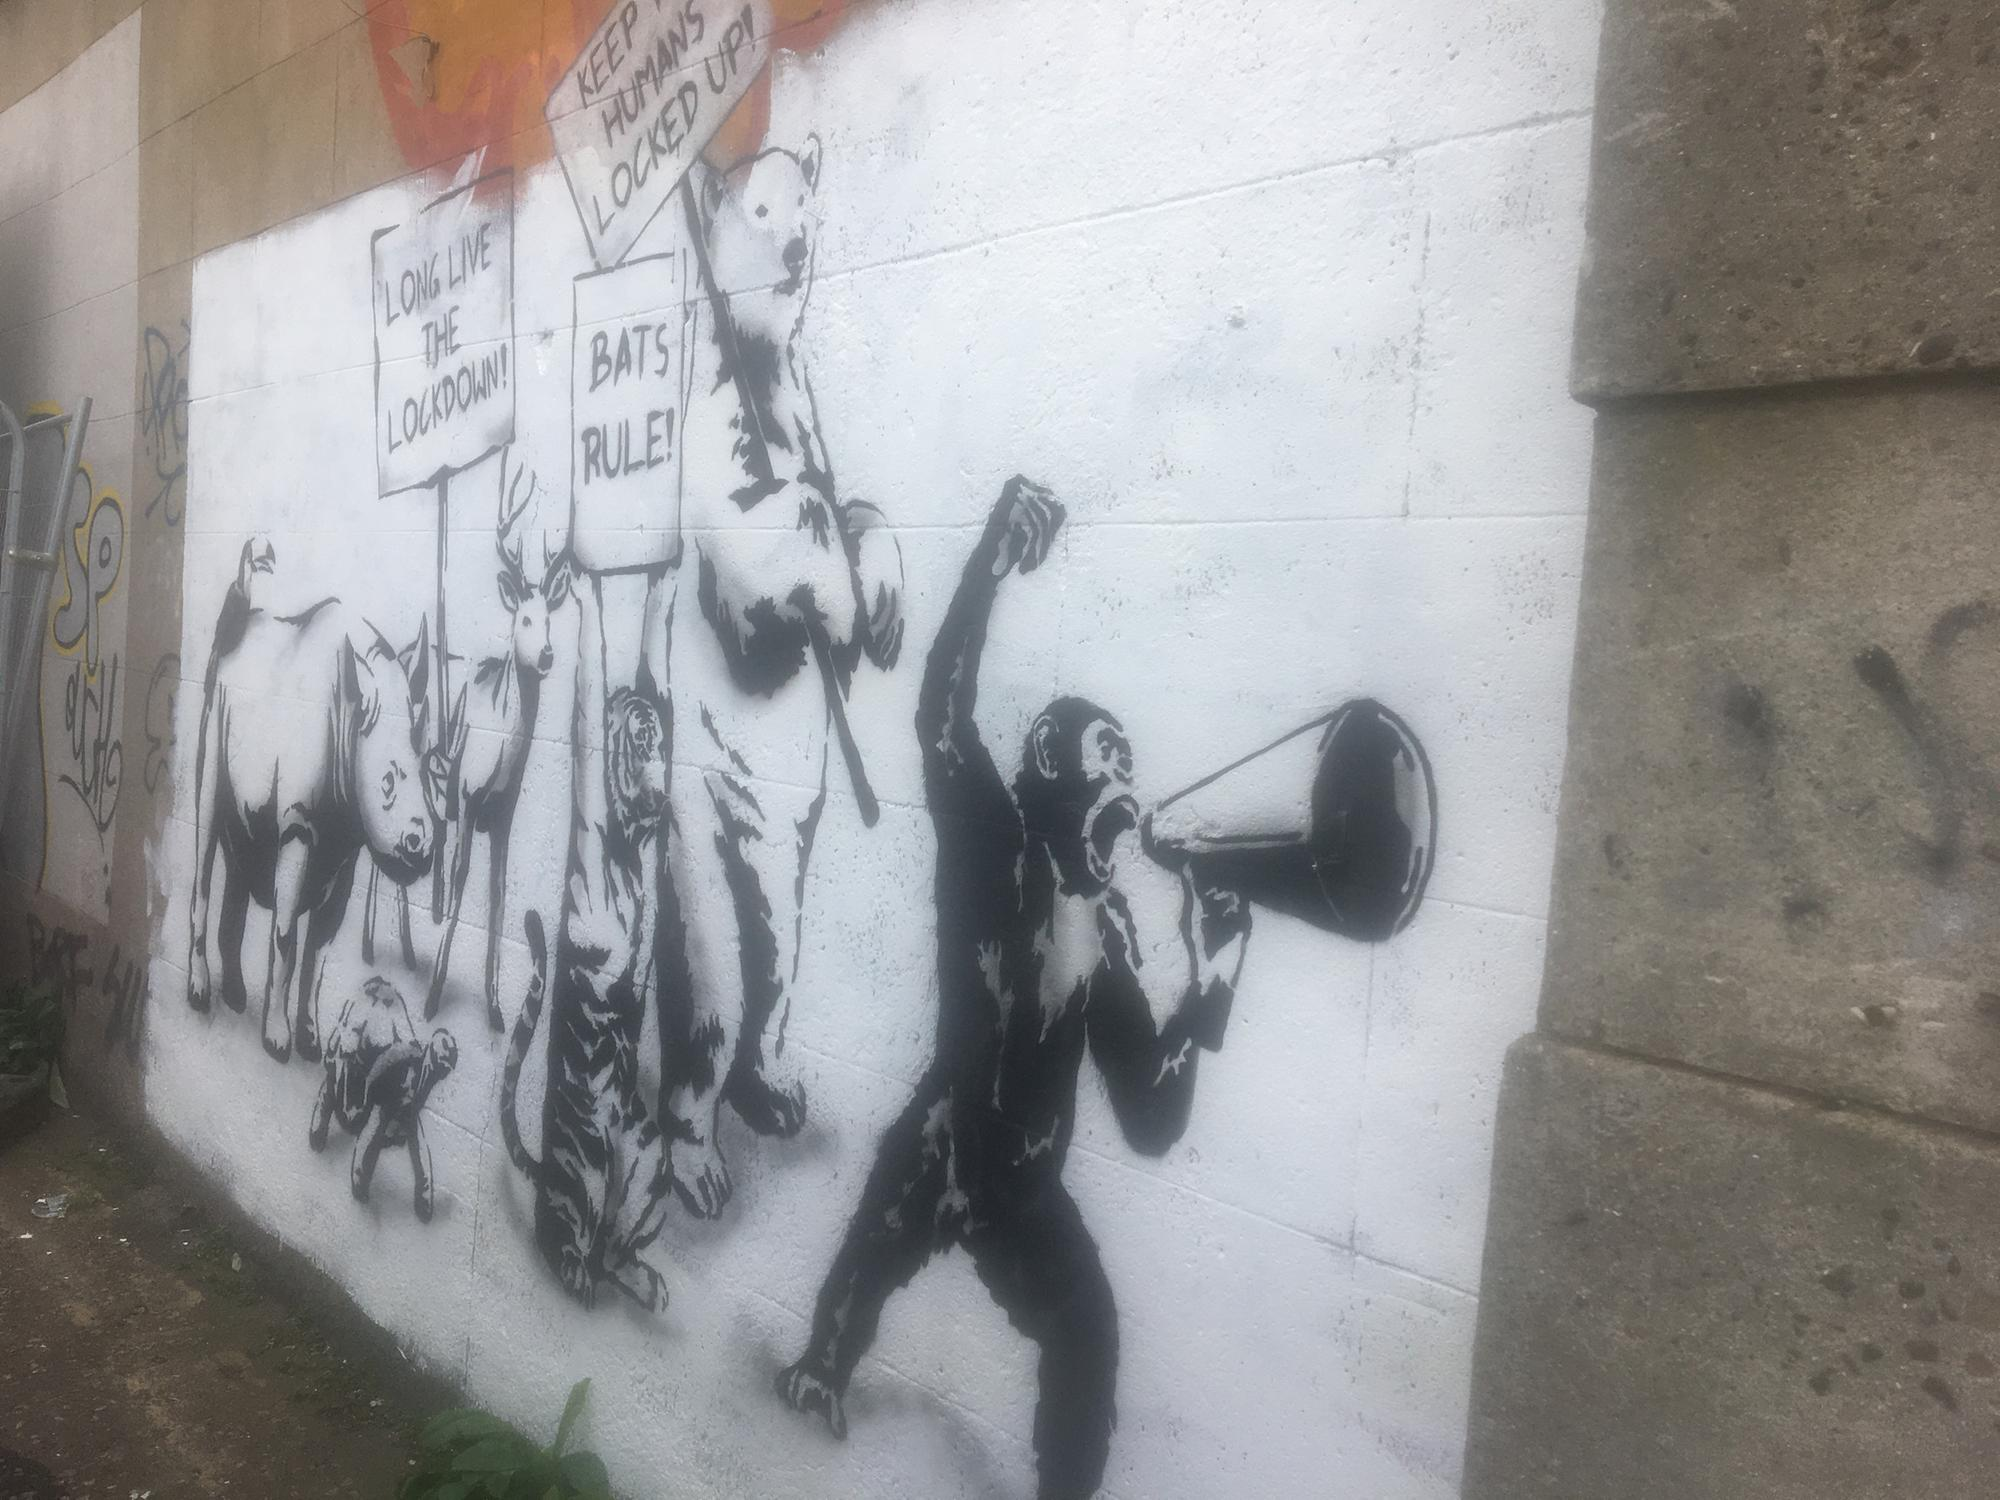 'It's provocative and humorous' - lockdown graffiti appears on Leith Walk